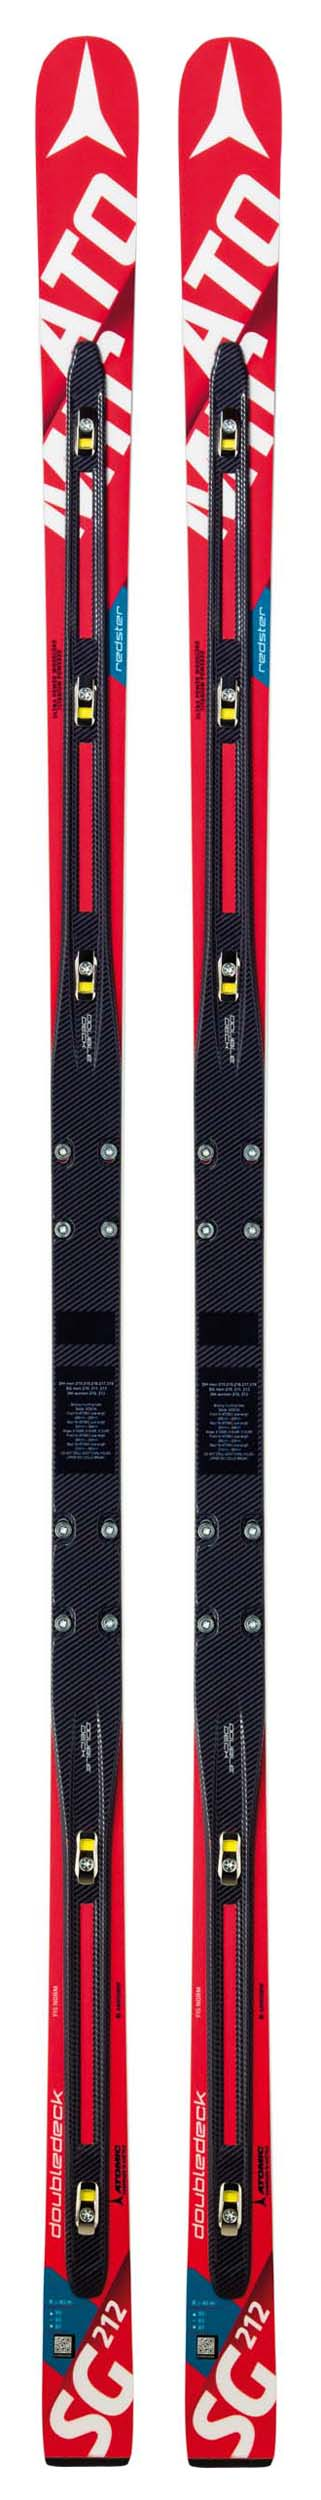 Atomic 2017 Redster D2 2.0 FIS SG M (45M) Race Skis w/Binding Options NEW !! 212cm